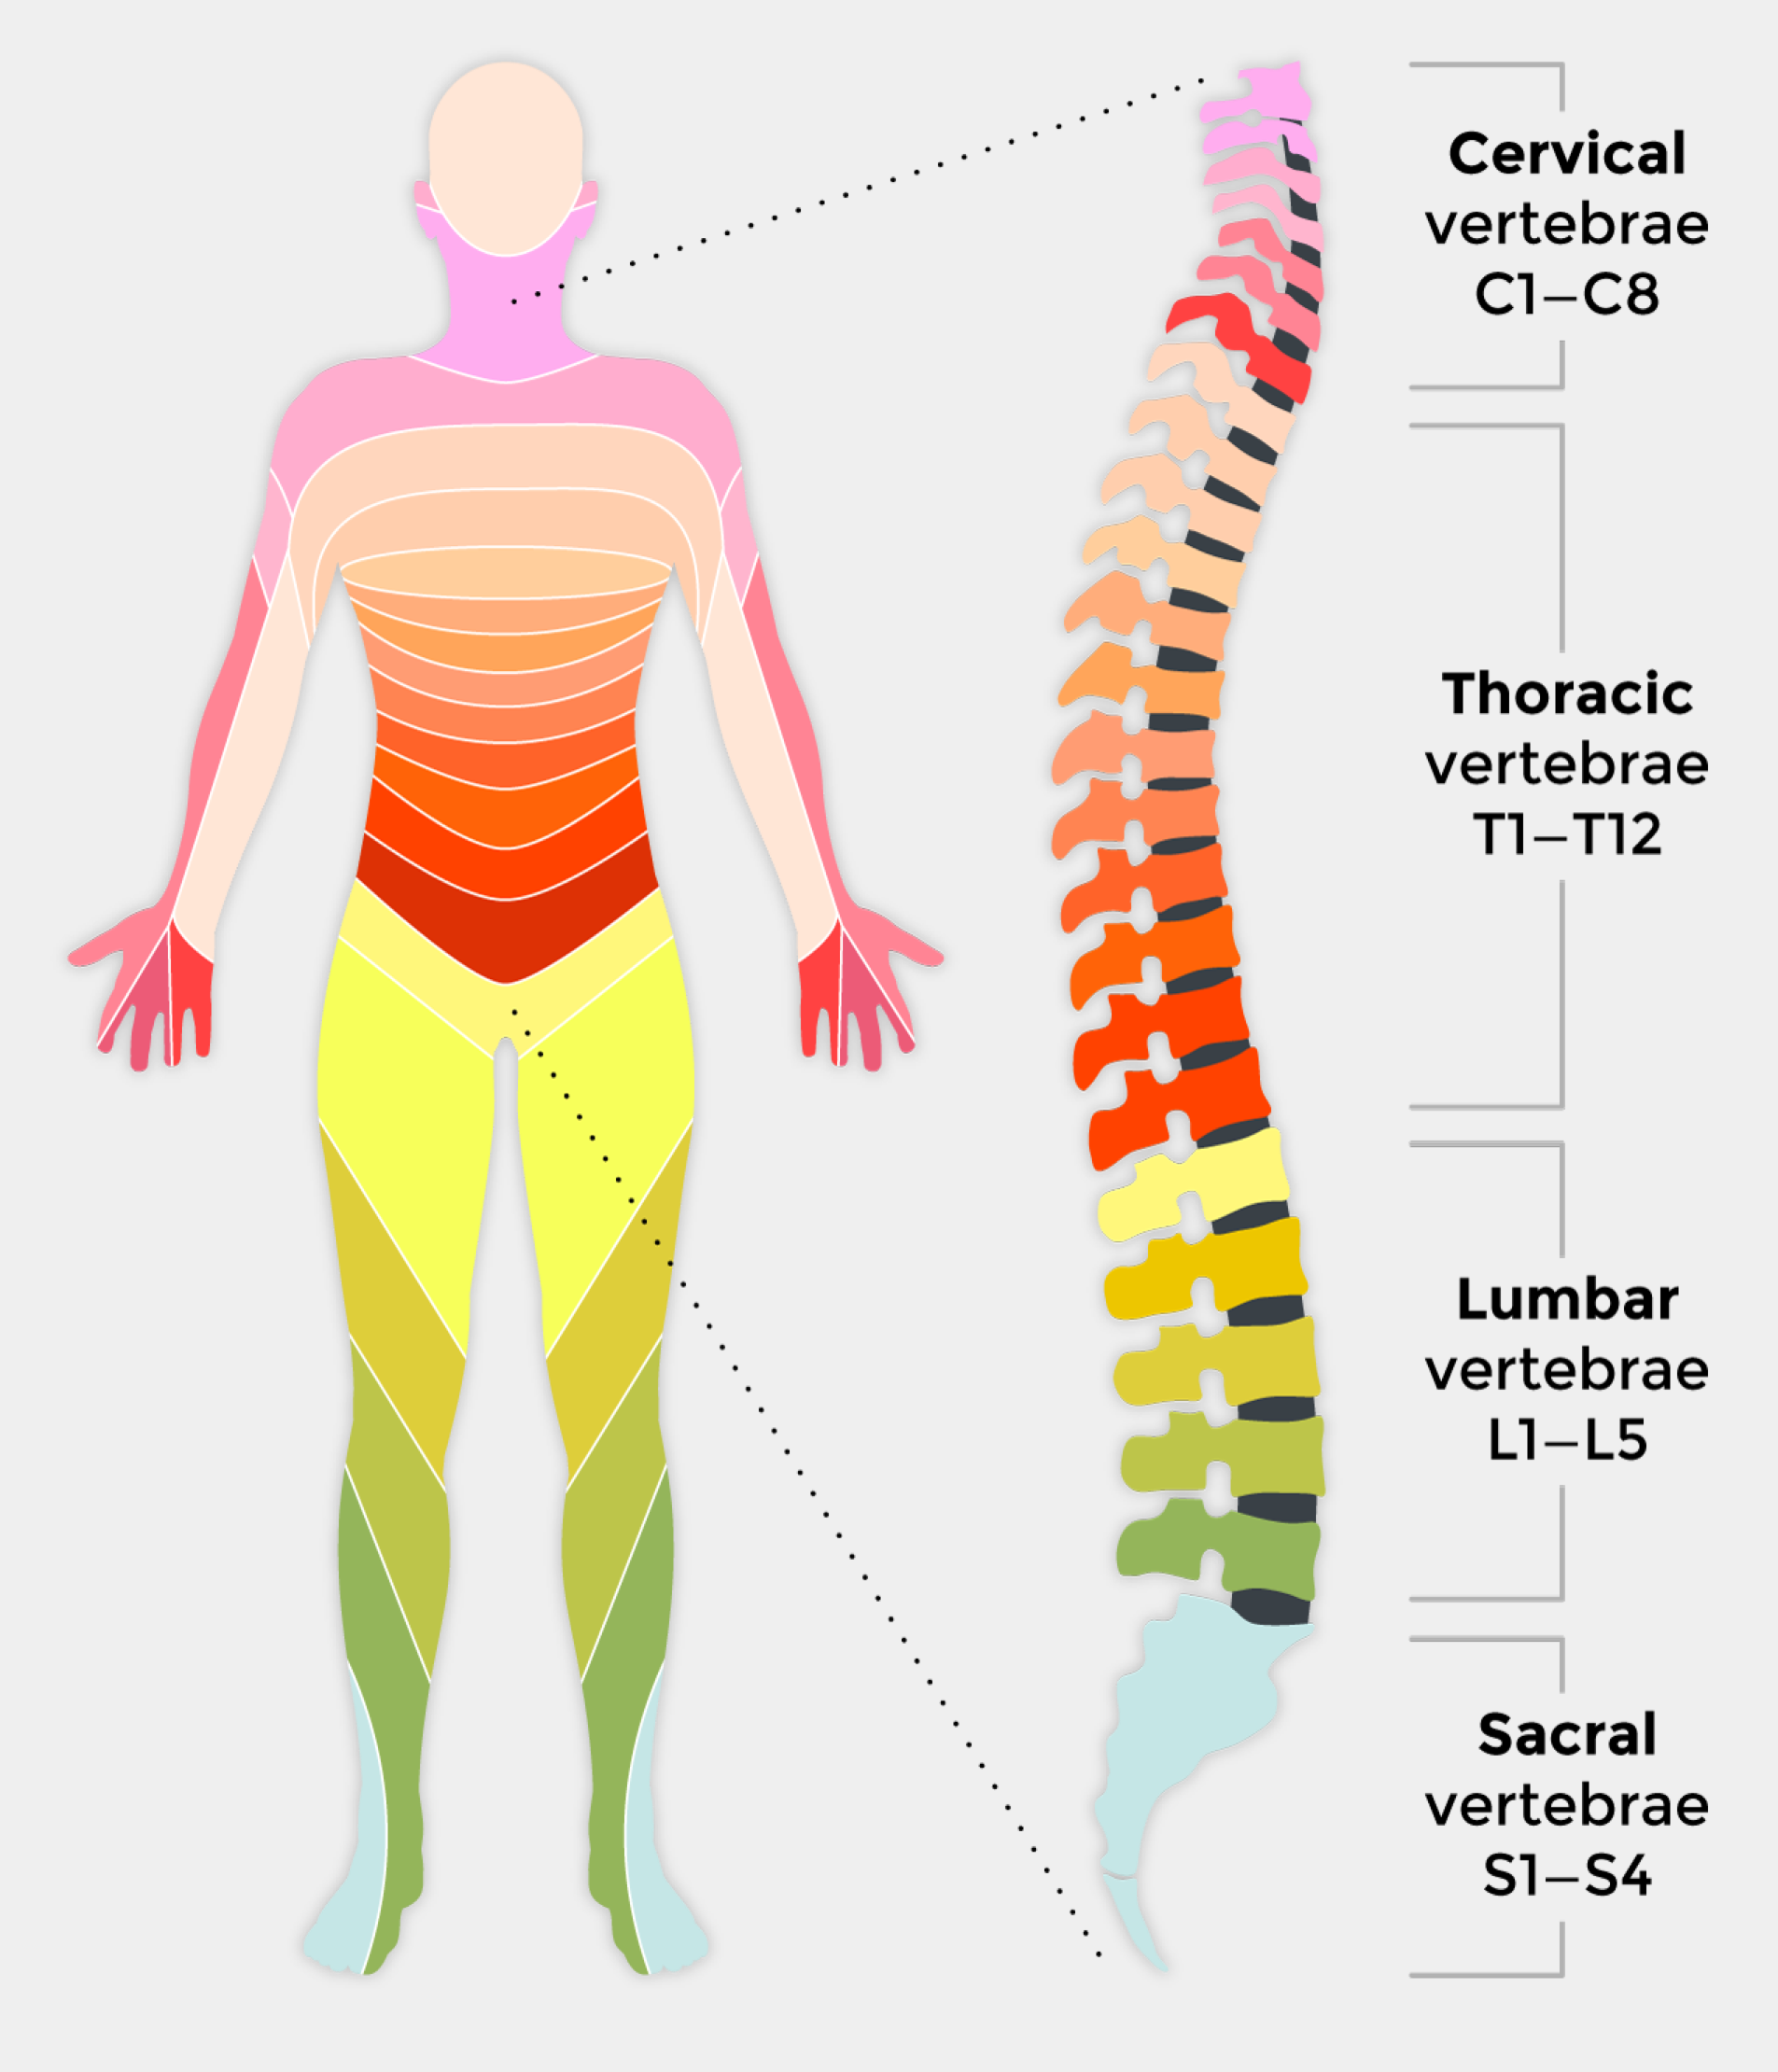 Spinal cord injury and how it affects people back up spinal cord diagram showing all levels of injury sciox Images